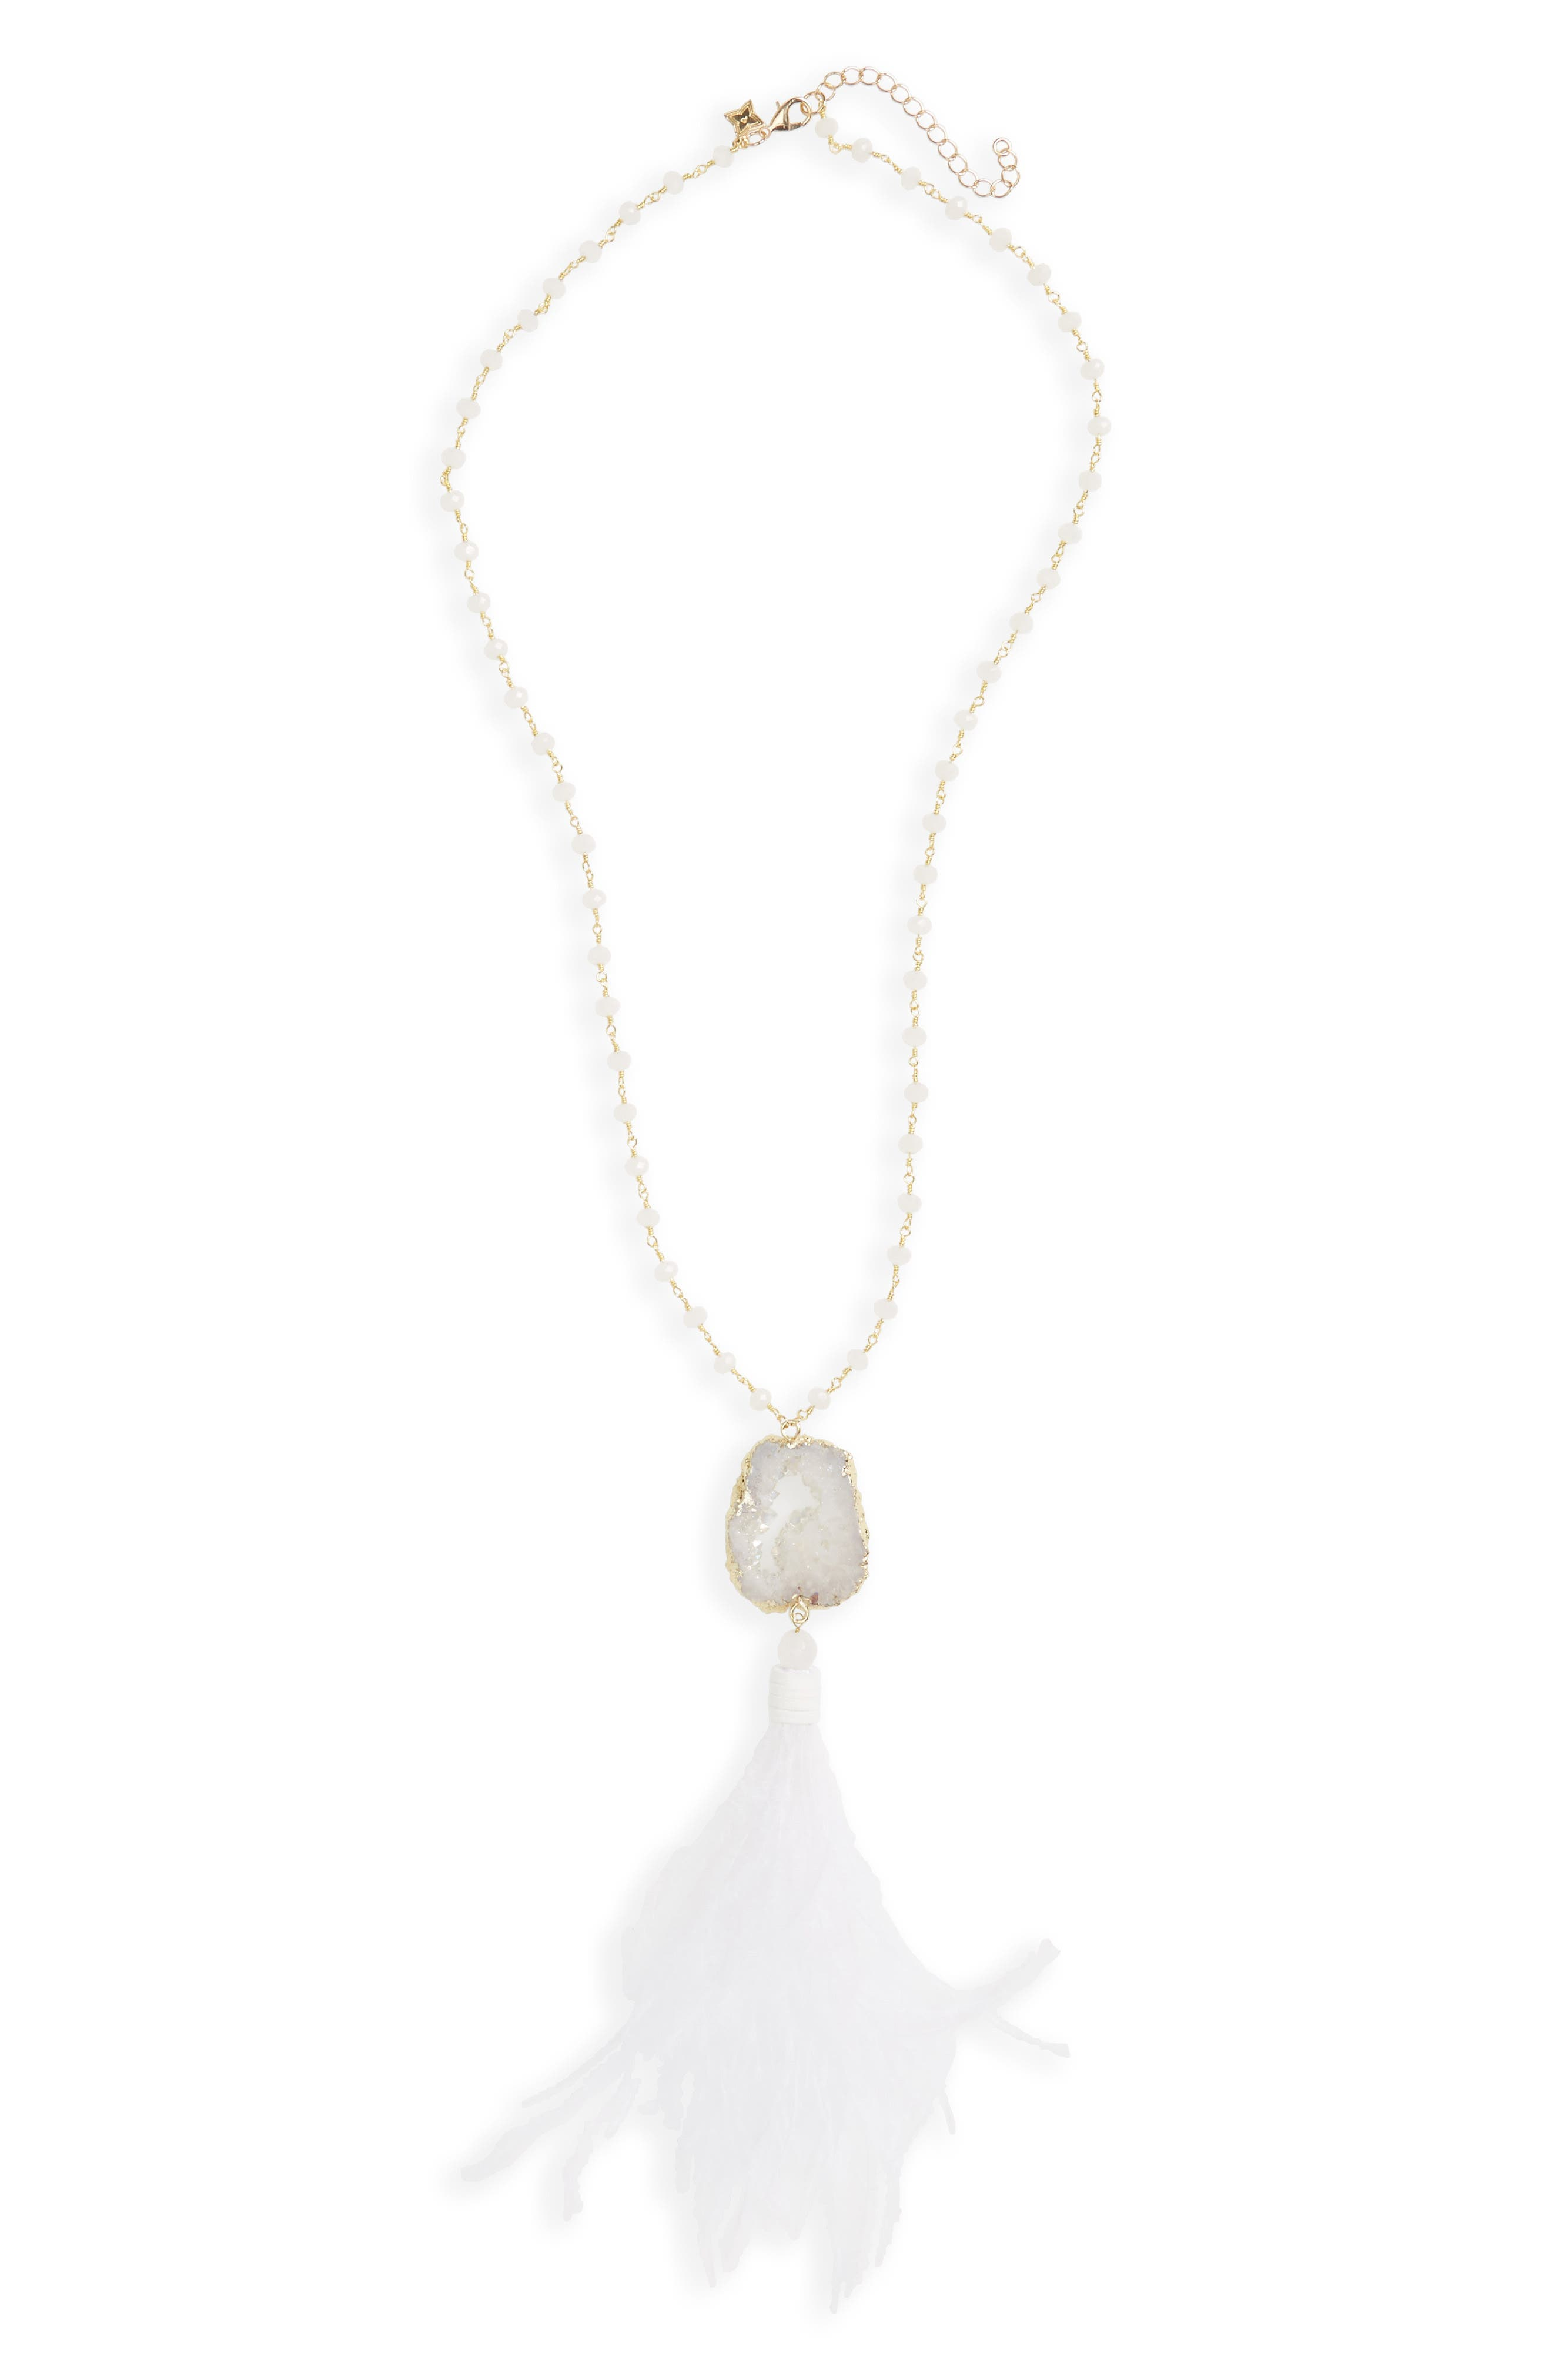 Panacea Feather Crystal Pendant Necklace, White